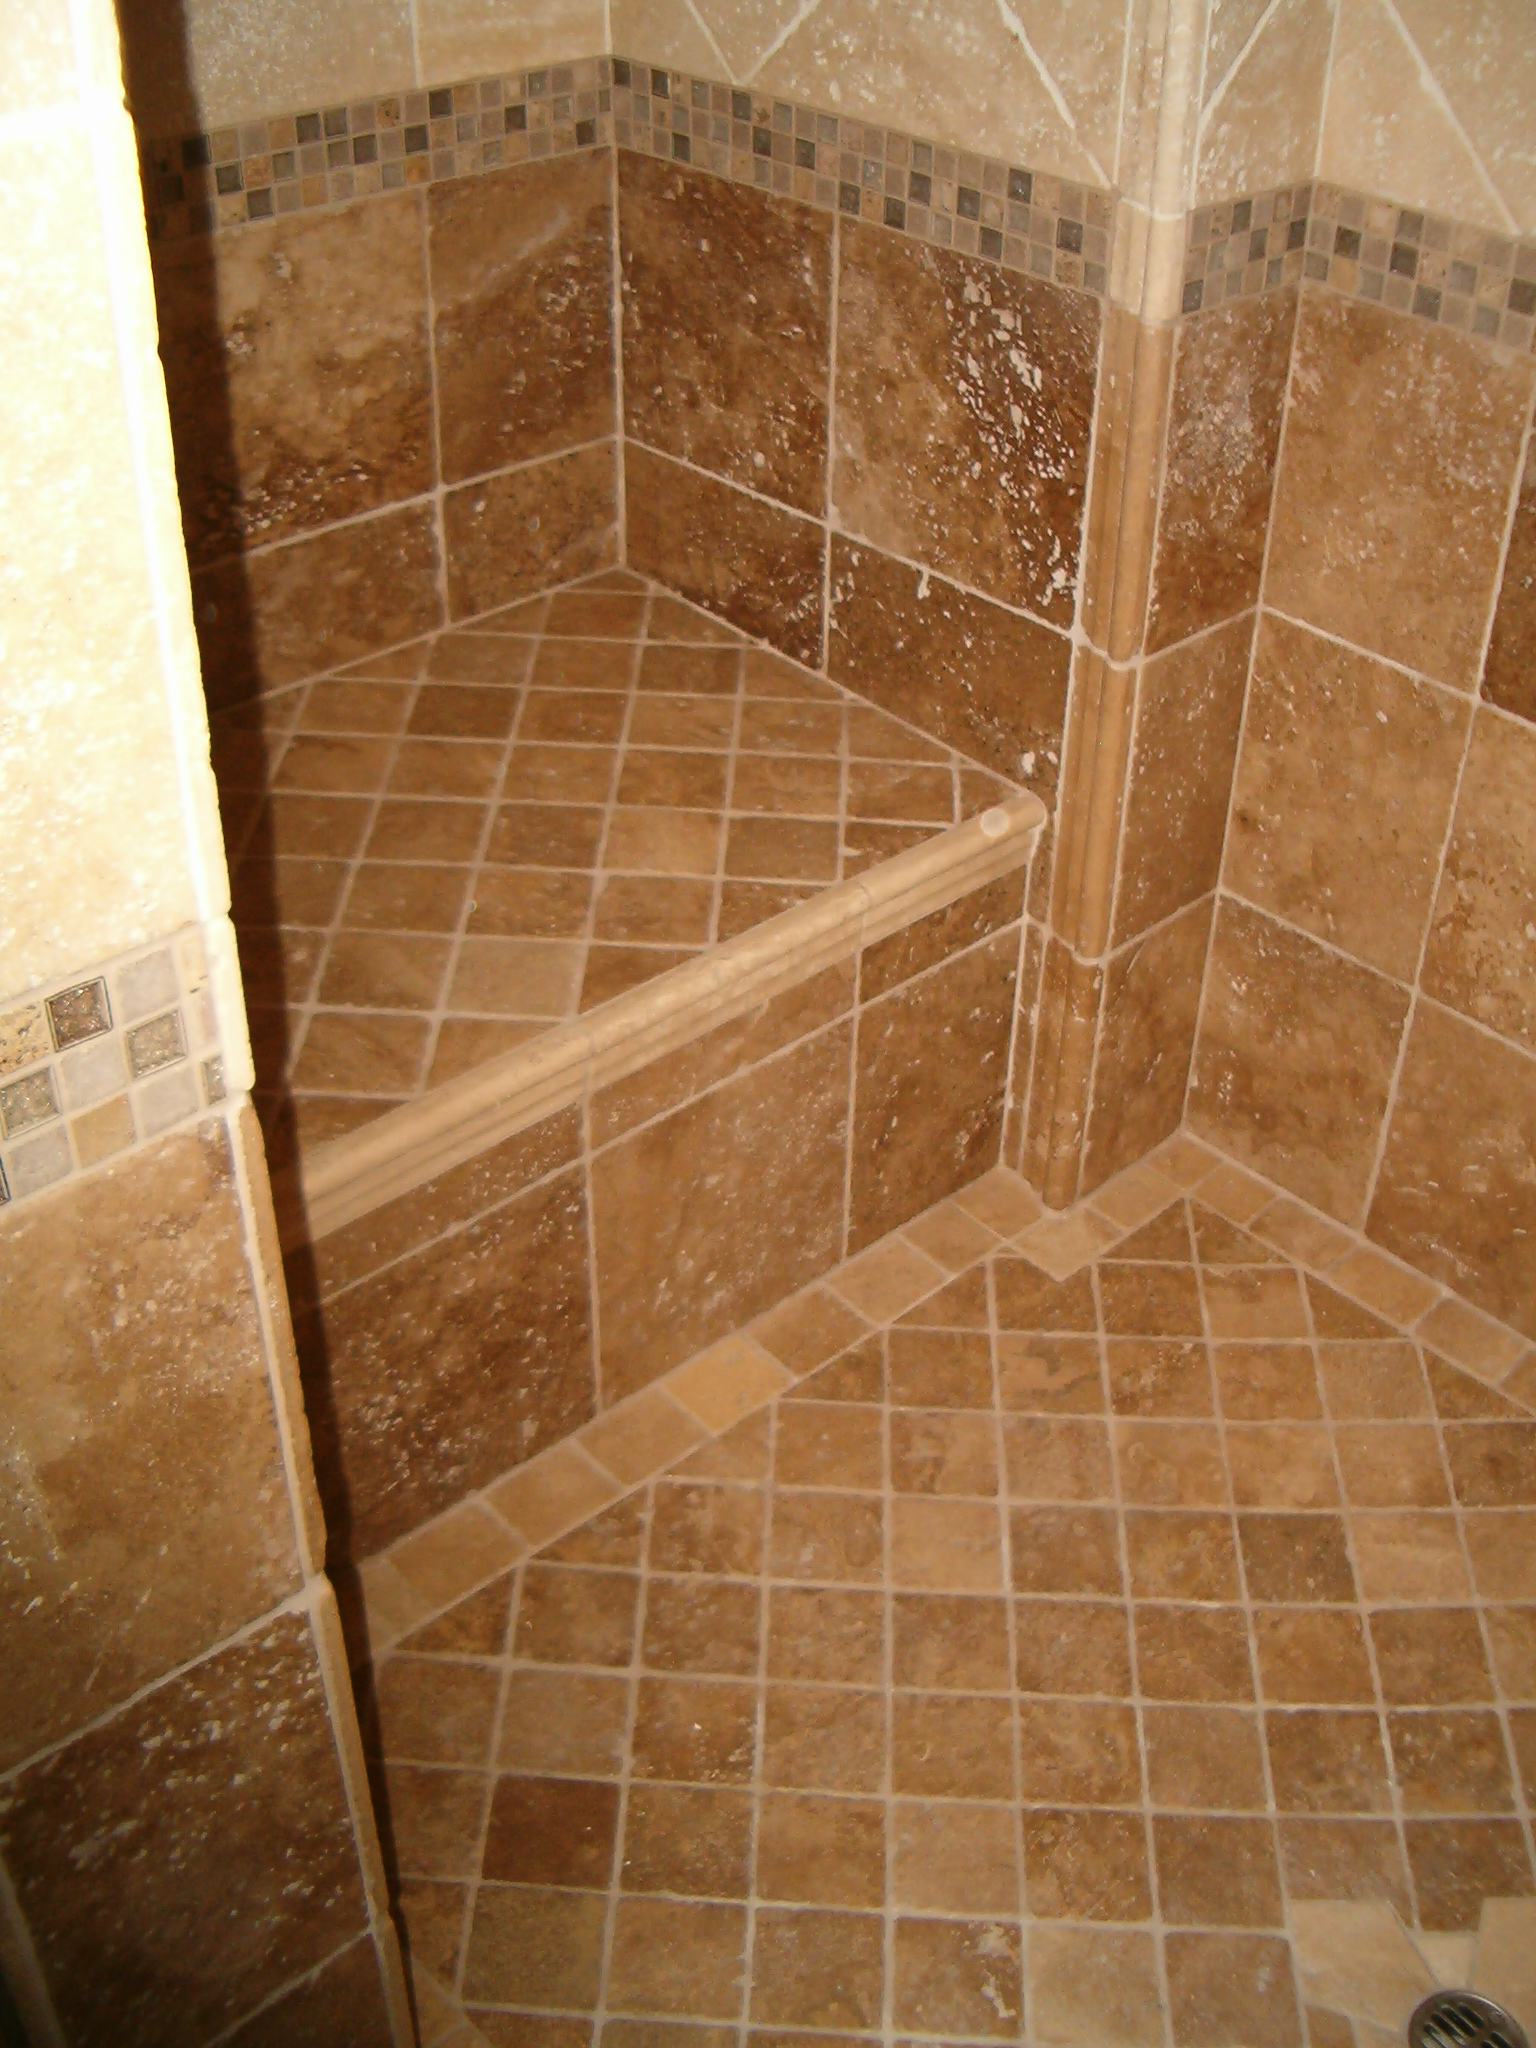 distributors-washroom-coverings-gray-concrete-idea-trim-placement-cheapest-bathtubs-resilient-red-layout-wooden-easy-floortiles-commercial-bathroom-tile-gallery-projects